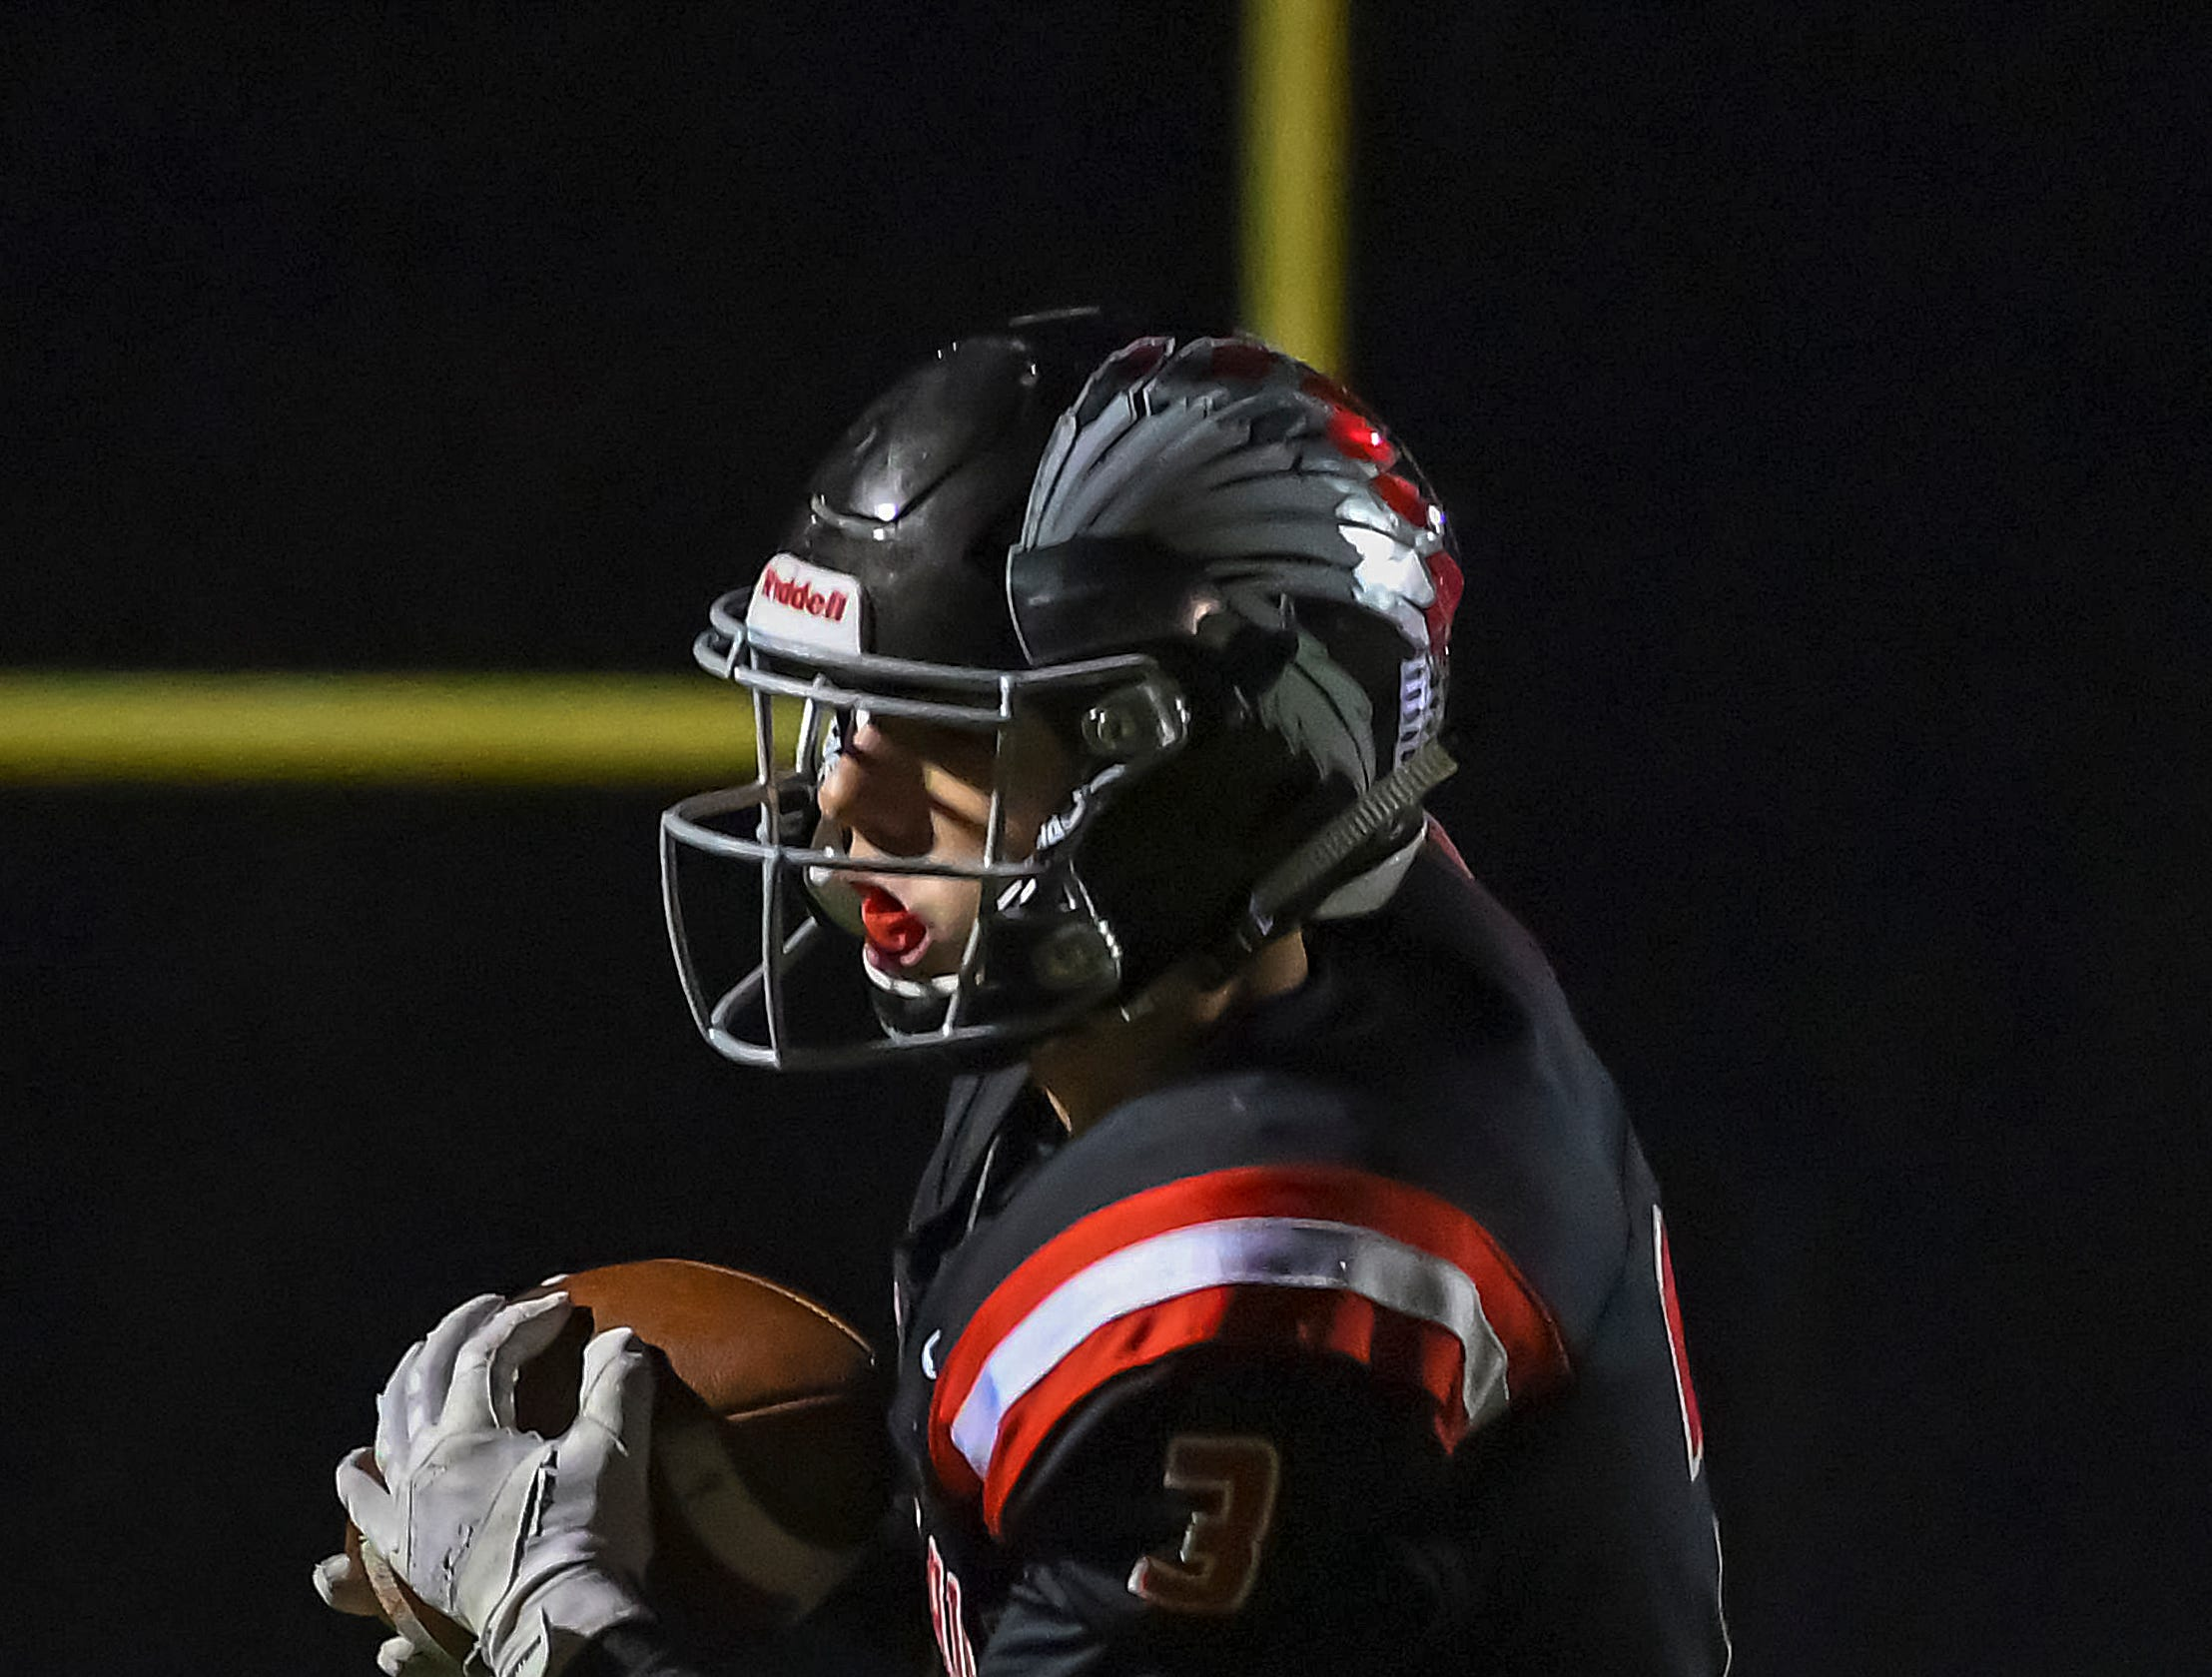 Trey Lopez of Indian Hill catches a pass against Waverly in the OHSAA D4 Region 16 Playoffs at Indian Hill High School, Saturday, Nov. 3, 2018